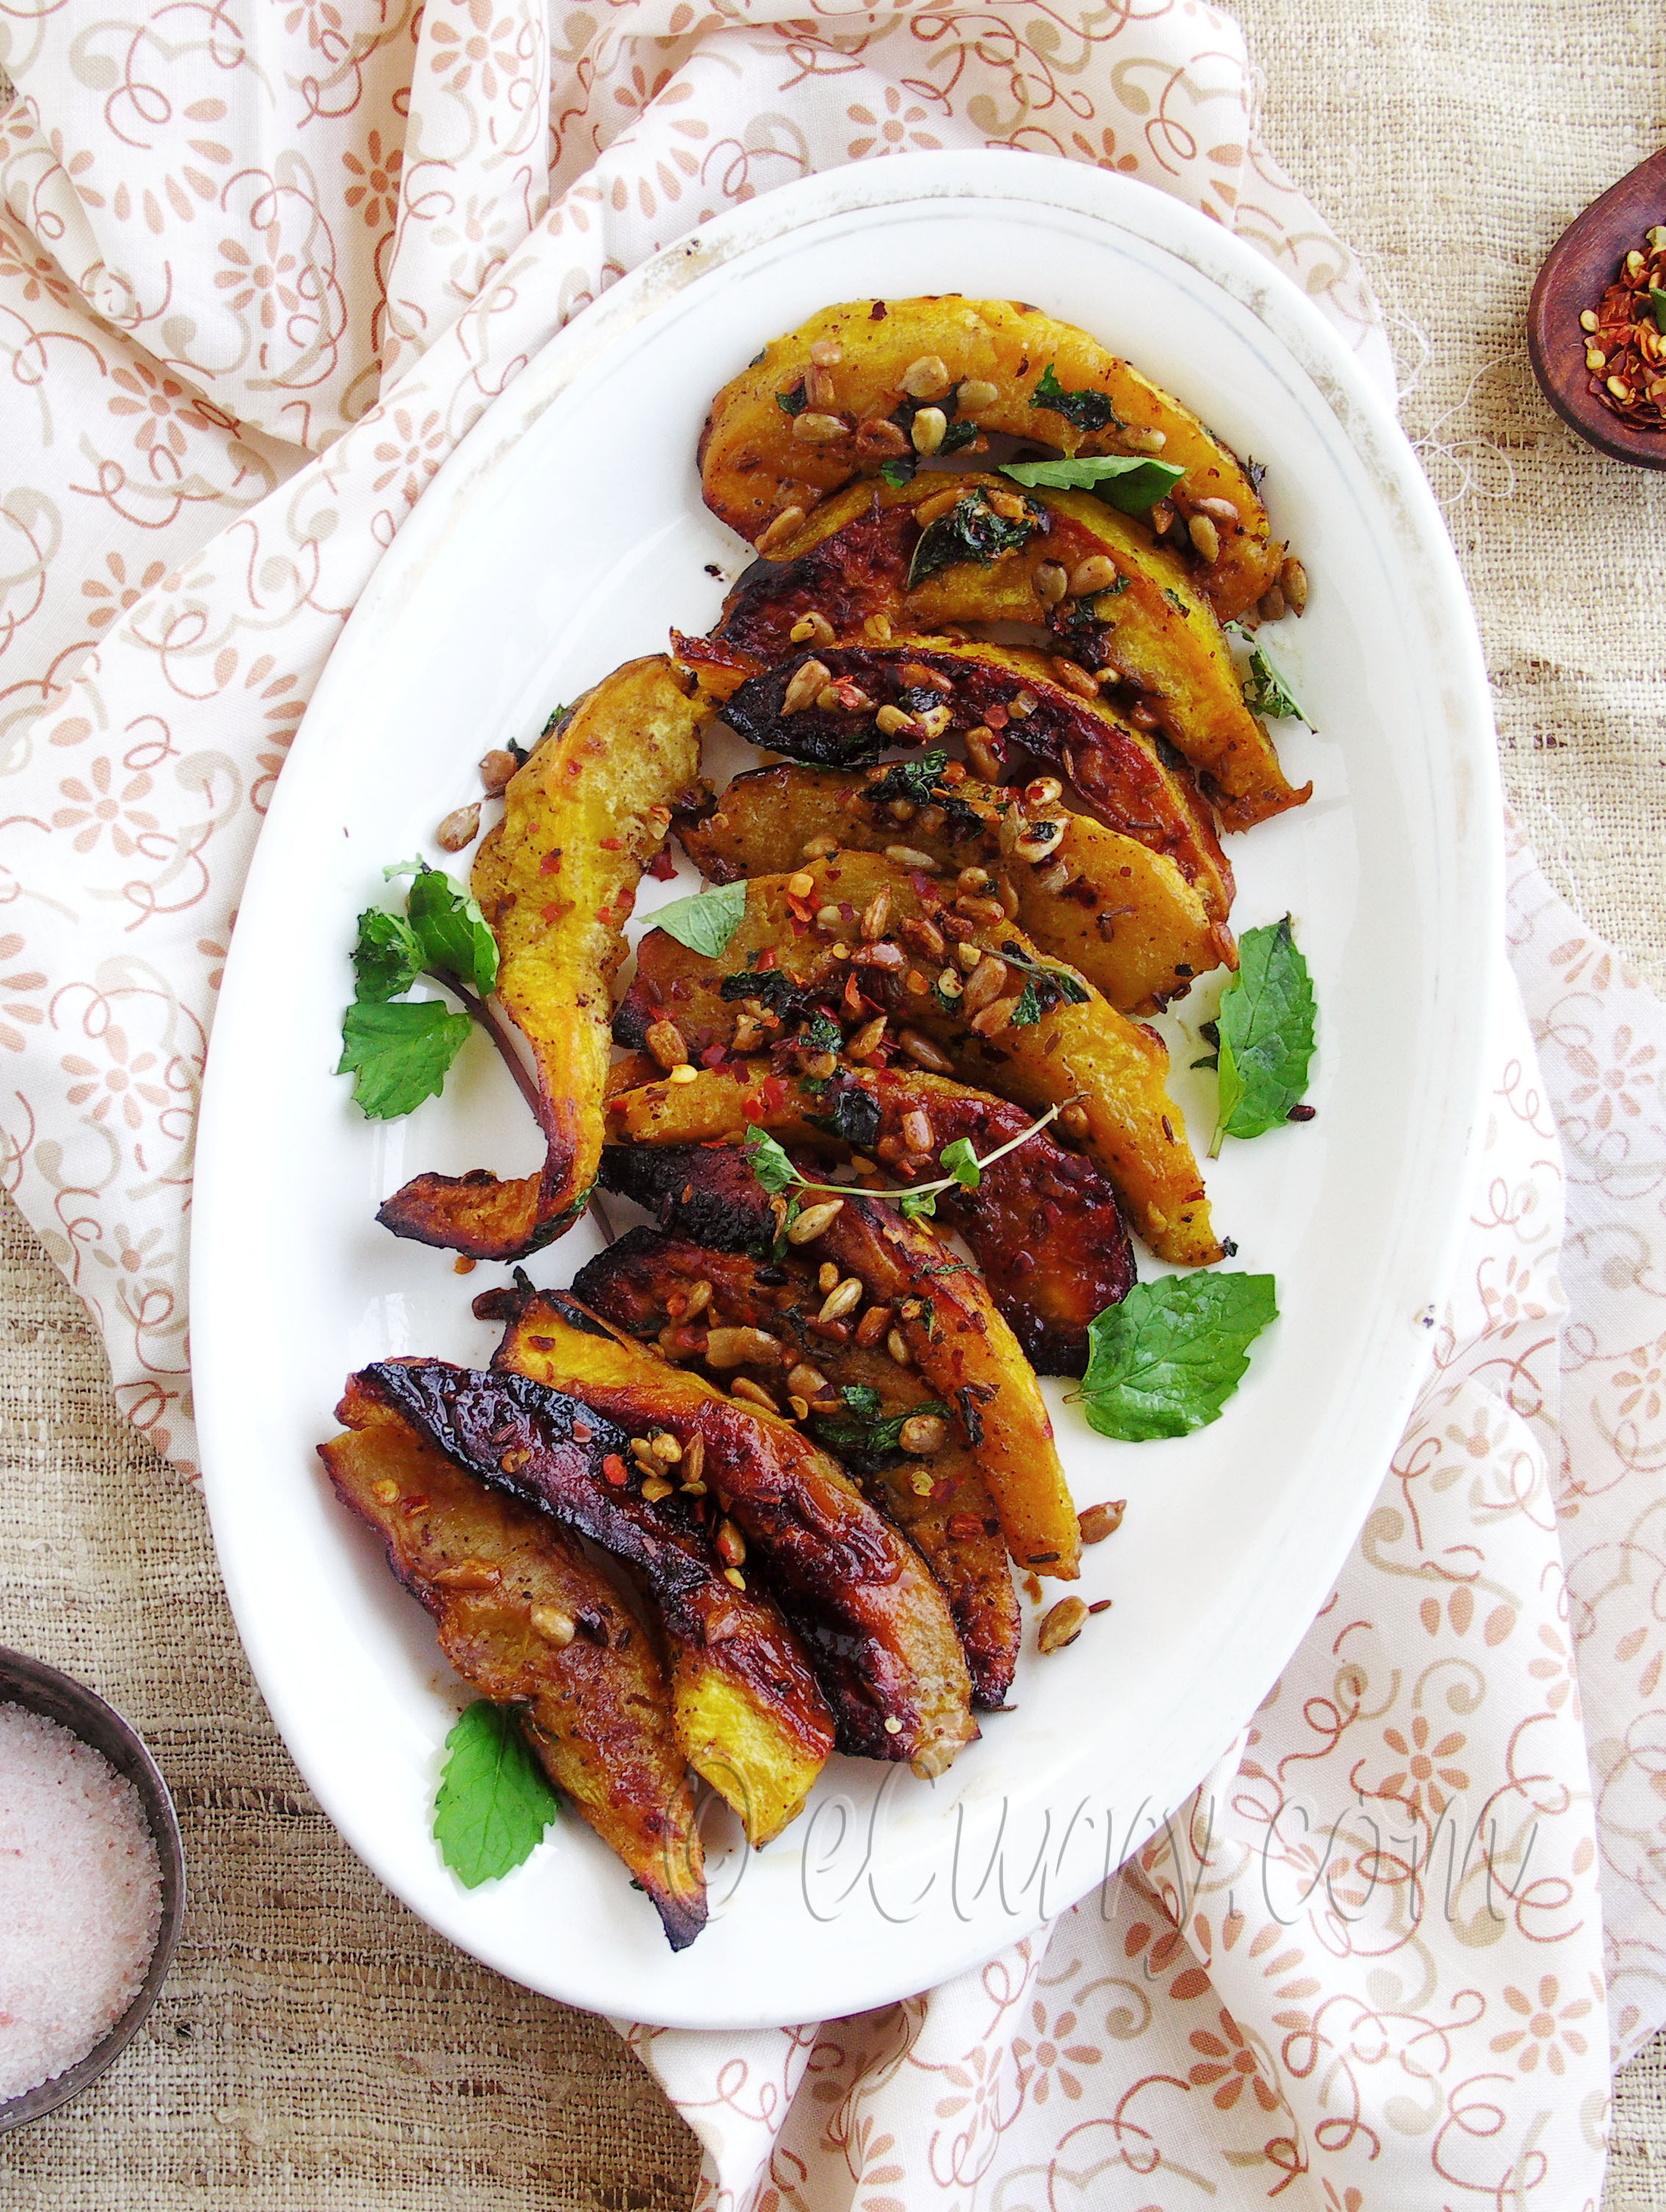 ... comments to Roasted Acorn Squash with Mint, Sumac and Sunflower Seeds